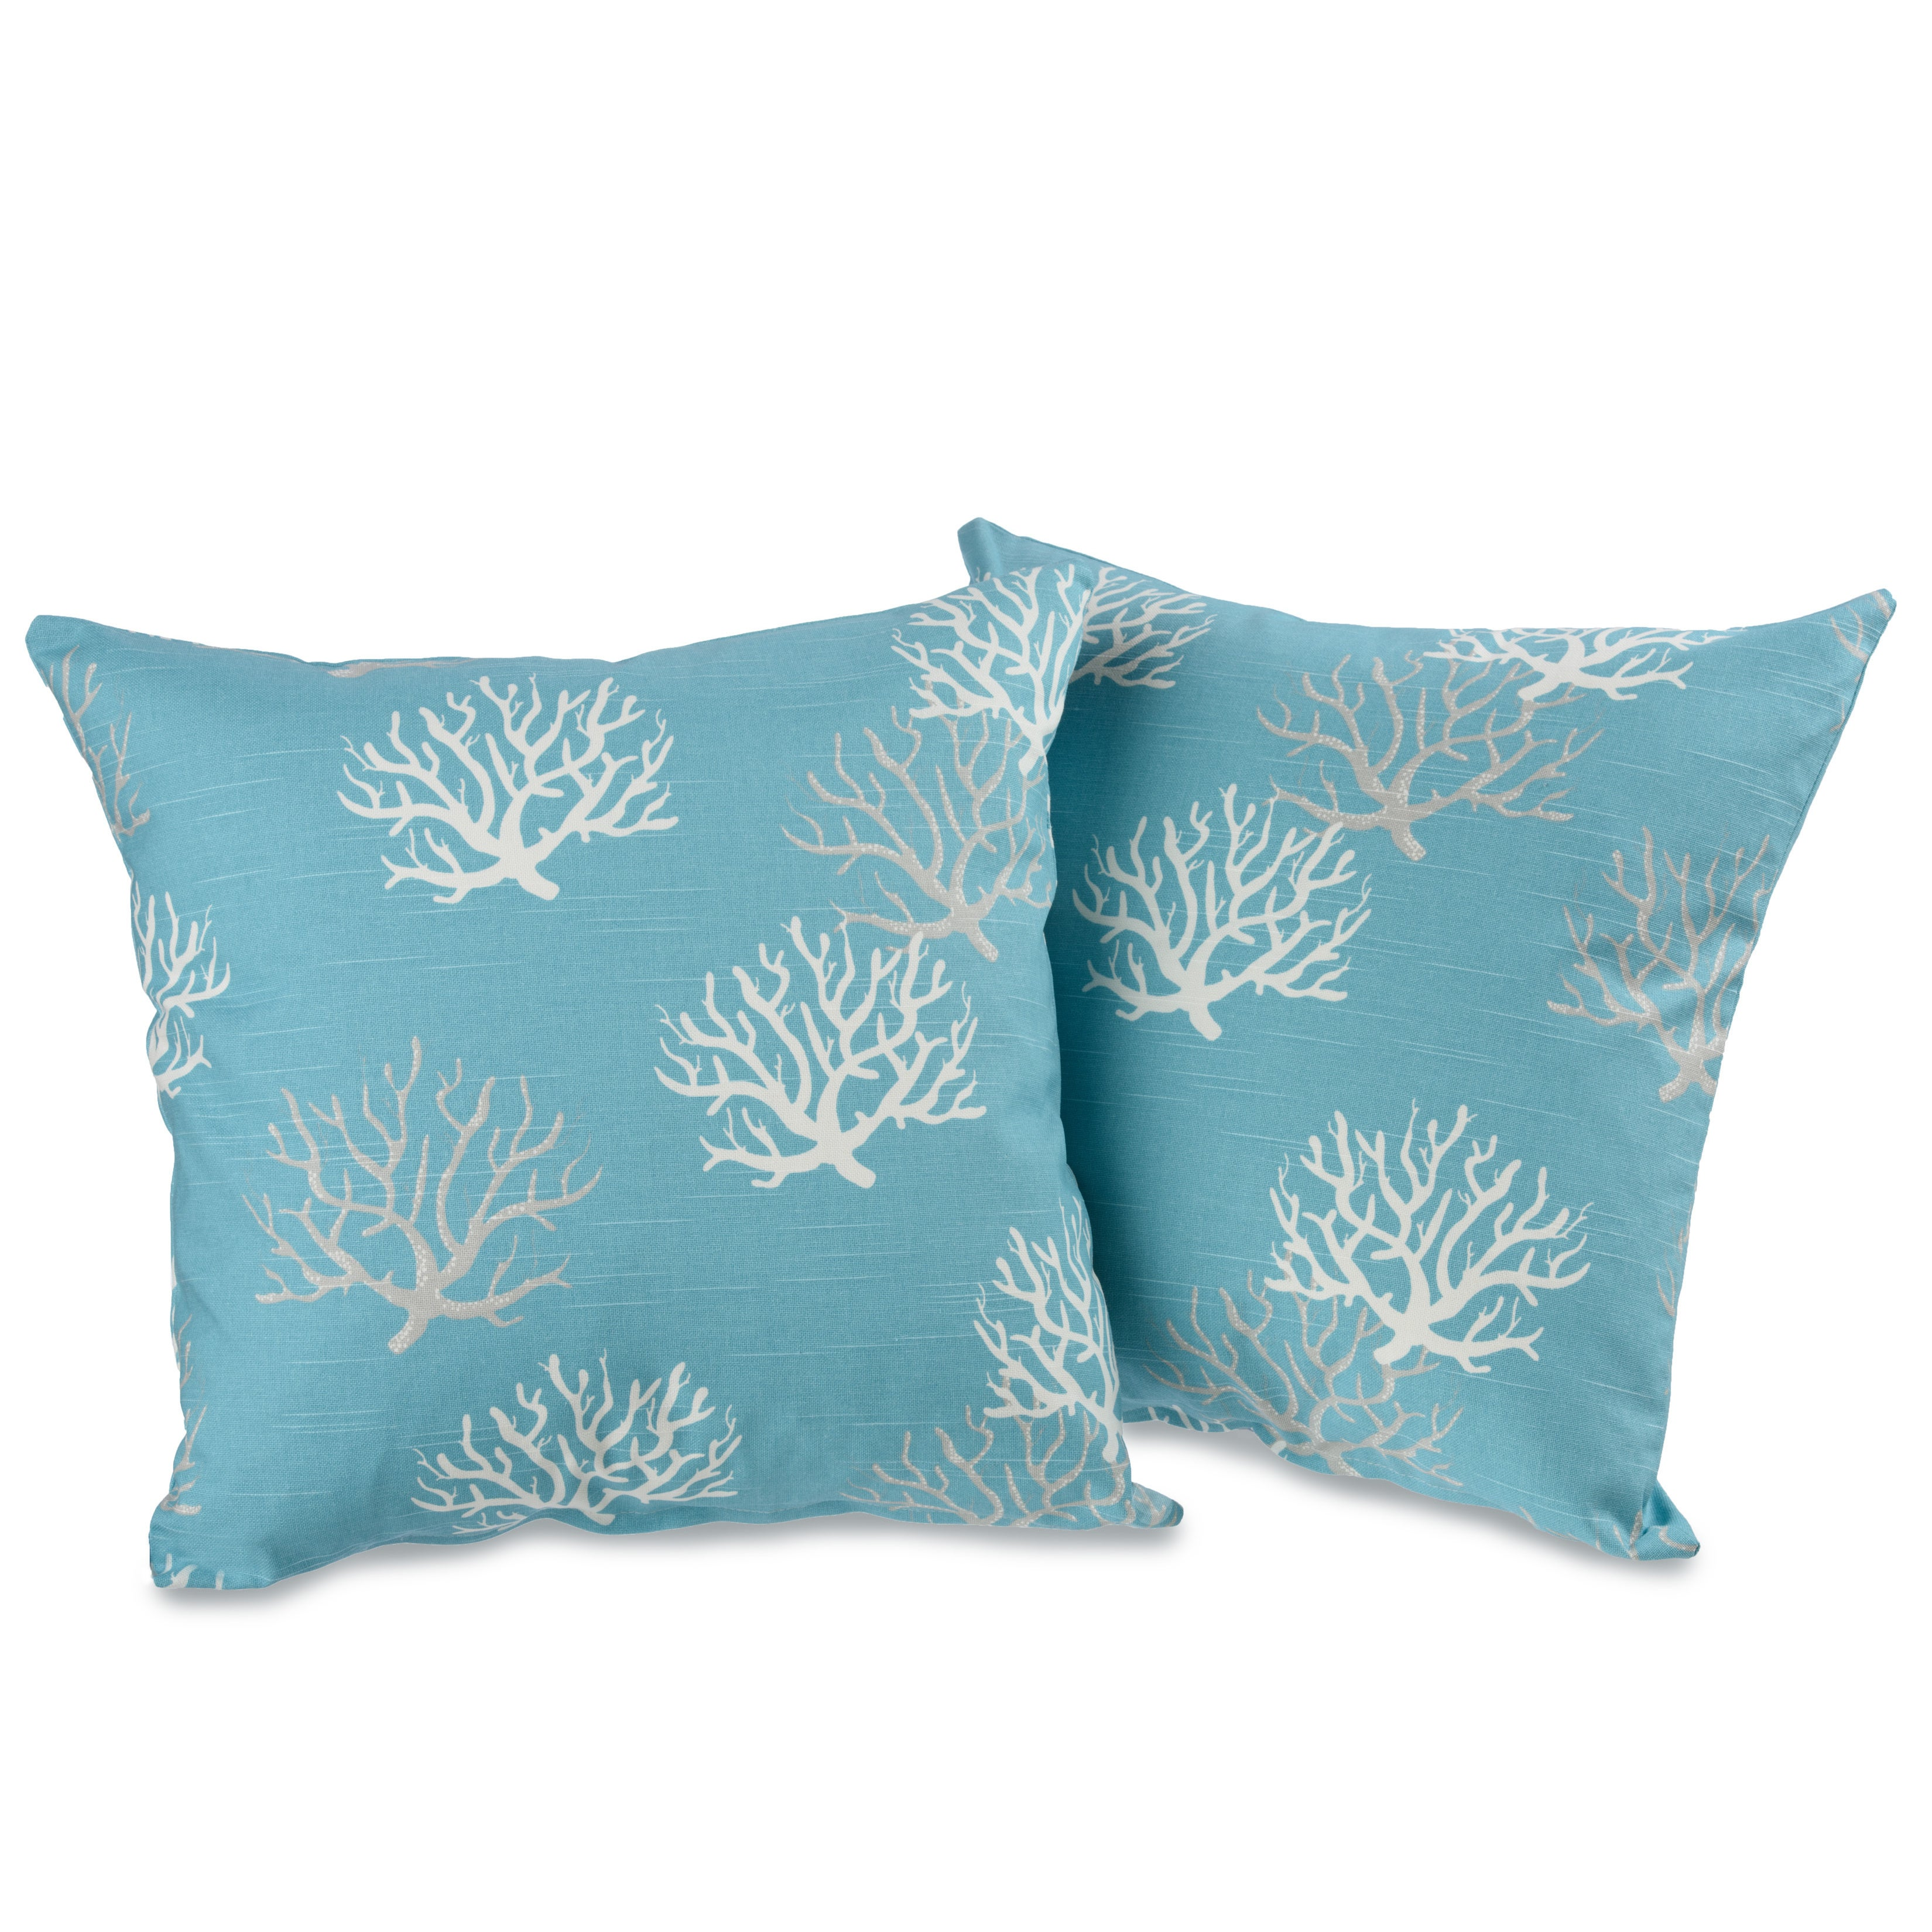 20 Inch Decorative Throw Pillows